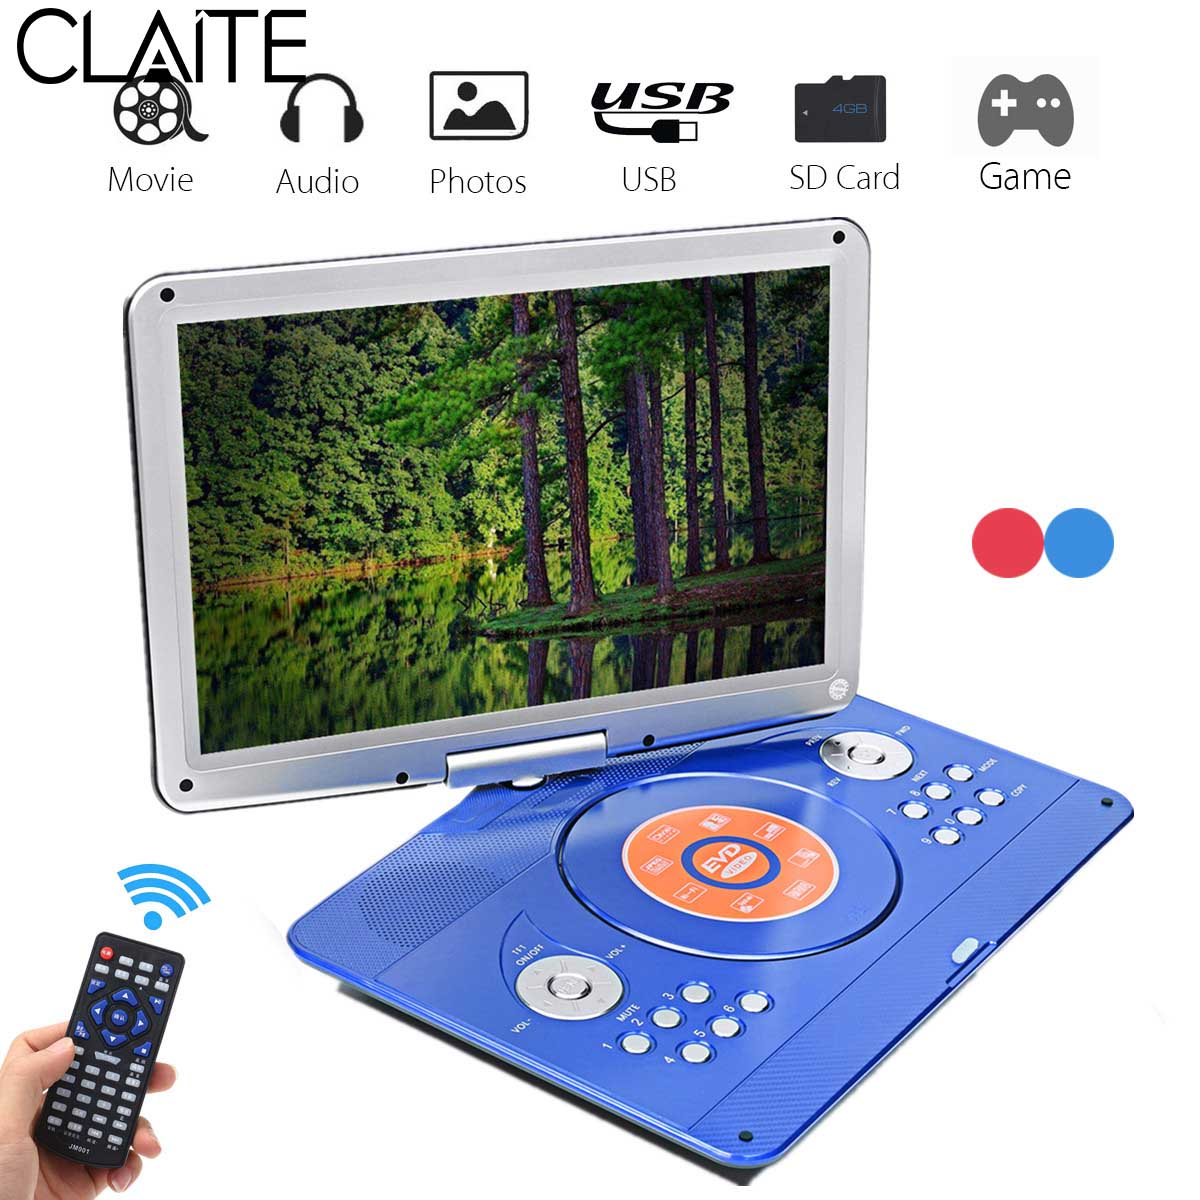 14 inch Portable DVD Player Rotatable Screen Multi Media DVD for Game TV Function Support MP3 MP4 VCD CD Player for Home and Car